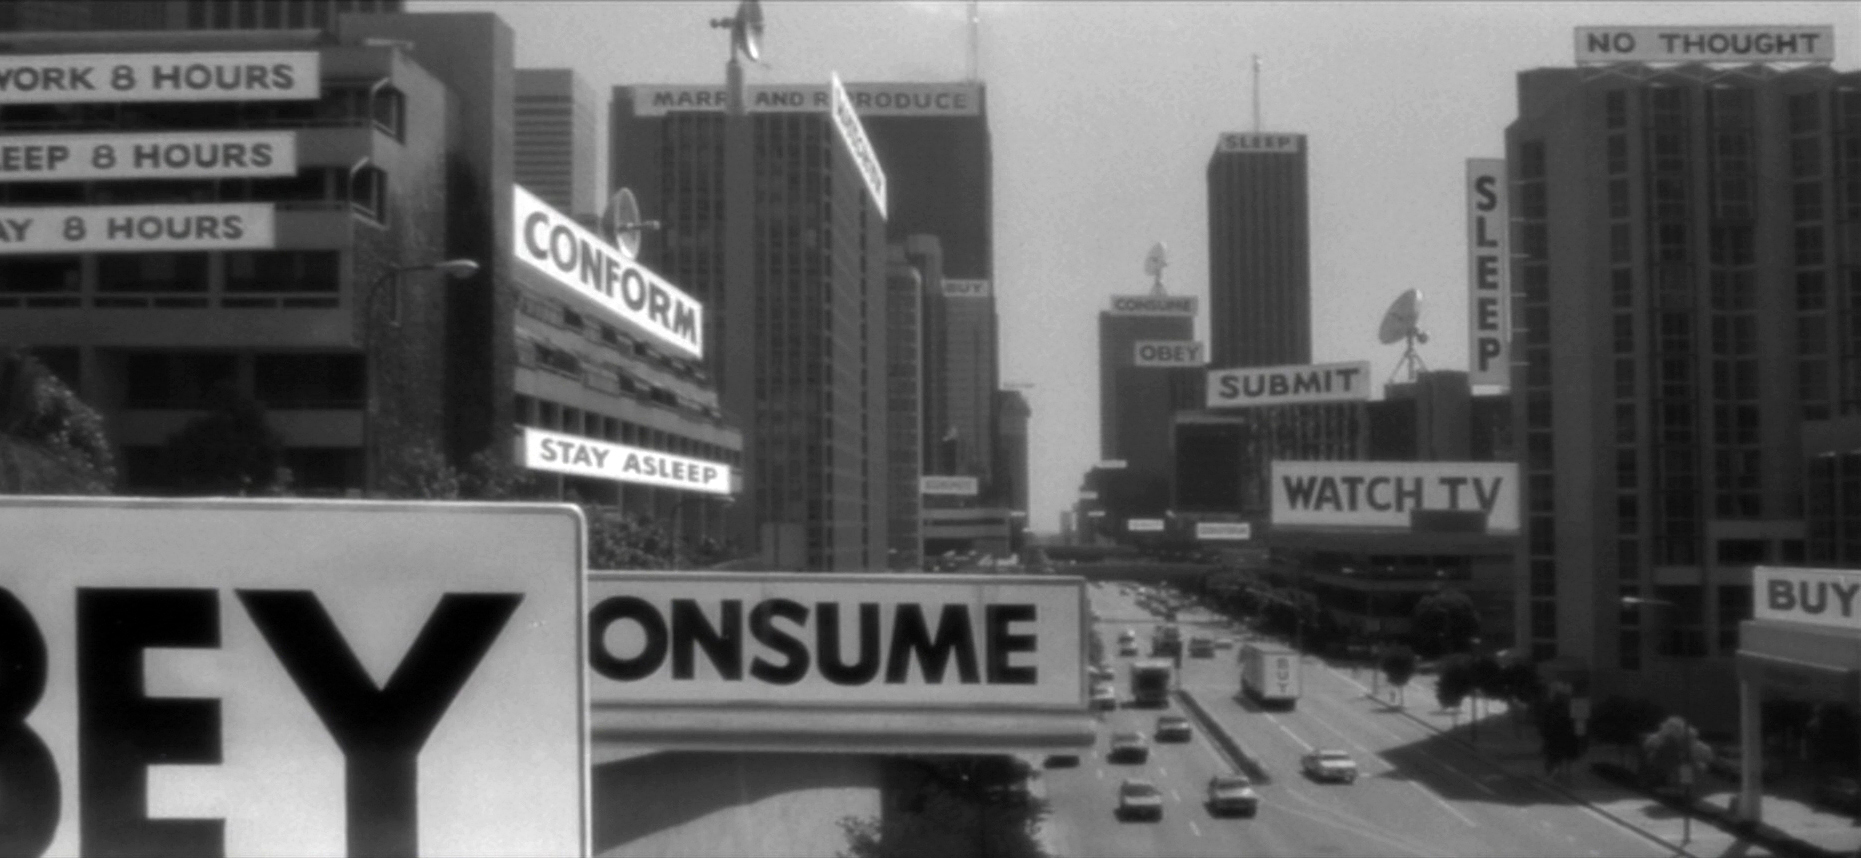 They Live City